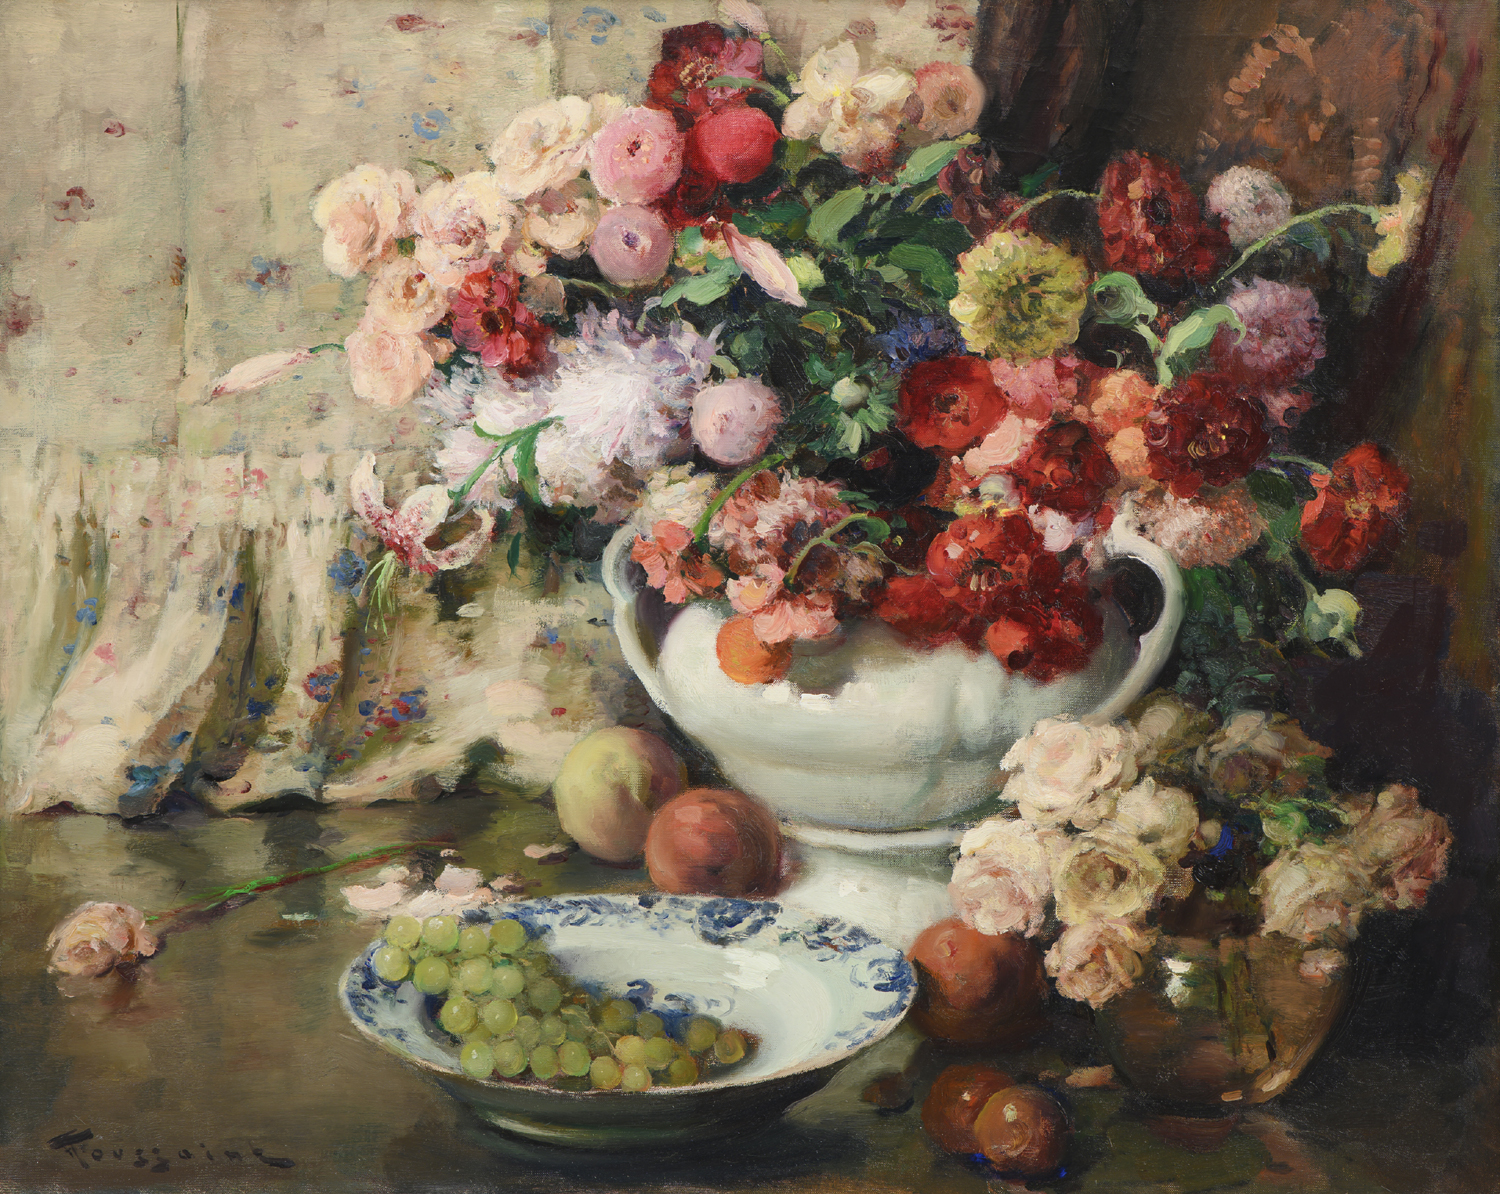 Fernand Toussaint | A still lifew with flowers and fruit | Kunsthandel Bies | Bies Gallery